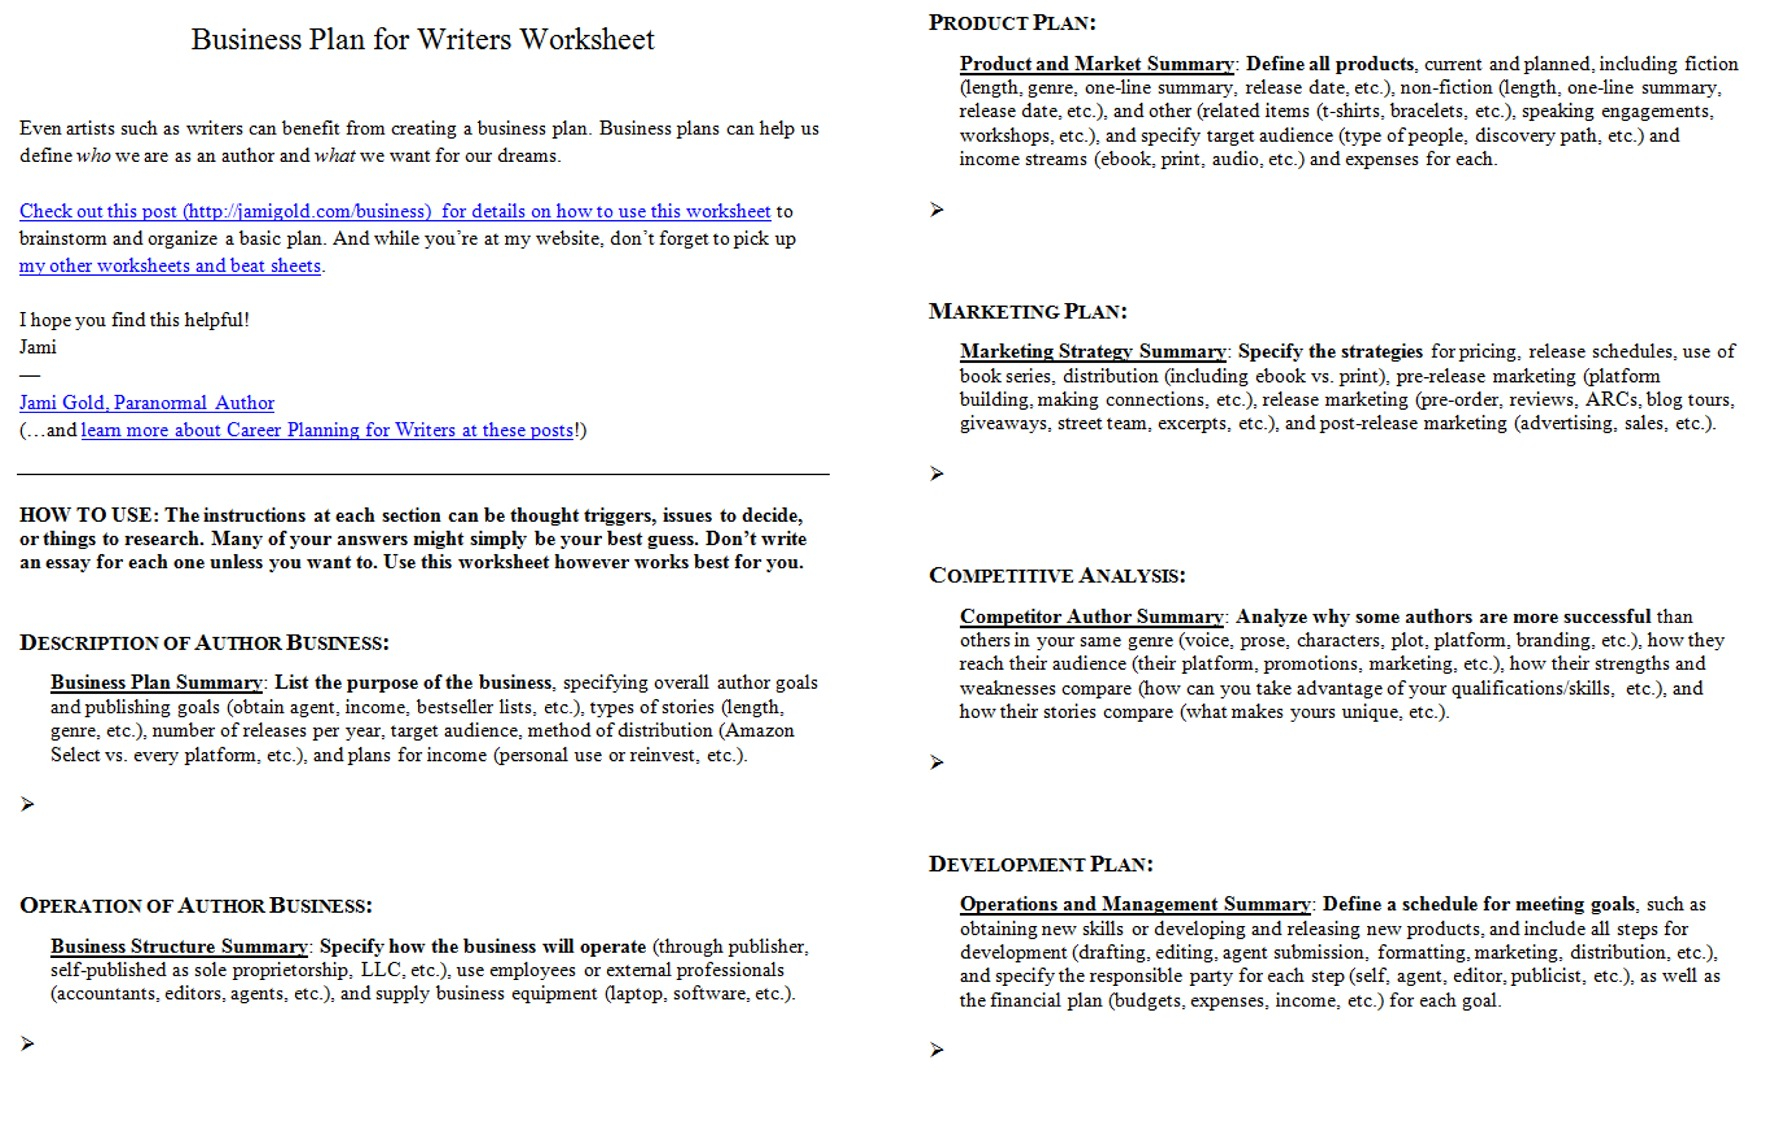 Weirdmailus  Winning Worksheets For Writers  Jami Gold Paranormal Author With Magnificent Screen Shot Of Both Pages Of The Business Plan For Writers Worksheet With Endearing Being Verb Worksheets Also Cut And Paste Sorting Worksheets In Addition Prefix Sub Worksheets And Human Heart Worksheets As Well As Number Tracing Worksheet  Additionally Pshe Worksheets Ks From Jamigoldcom With Weirdmailus  Magnificent Worksheets For Writers  Jami Gold Paranormal Author With Endearing Screen Shot Of Both Pages Of The Business Plan For Writers Worksheet And Winning Being Verb Worksheets Also Cut And Paste Sorting Worksheets In Addition Prefix Sub Worksheets From Jamigoldcom